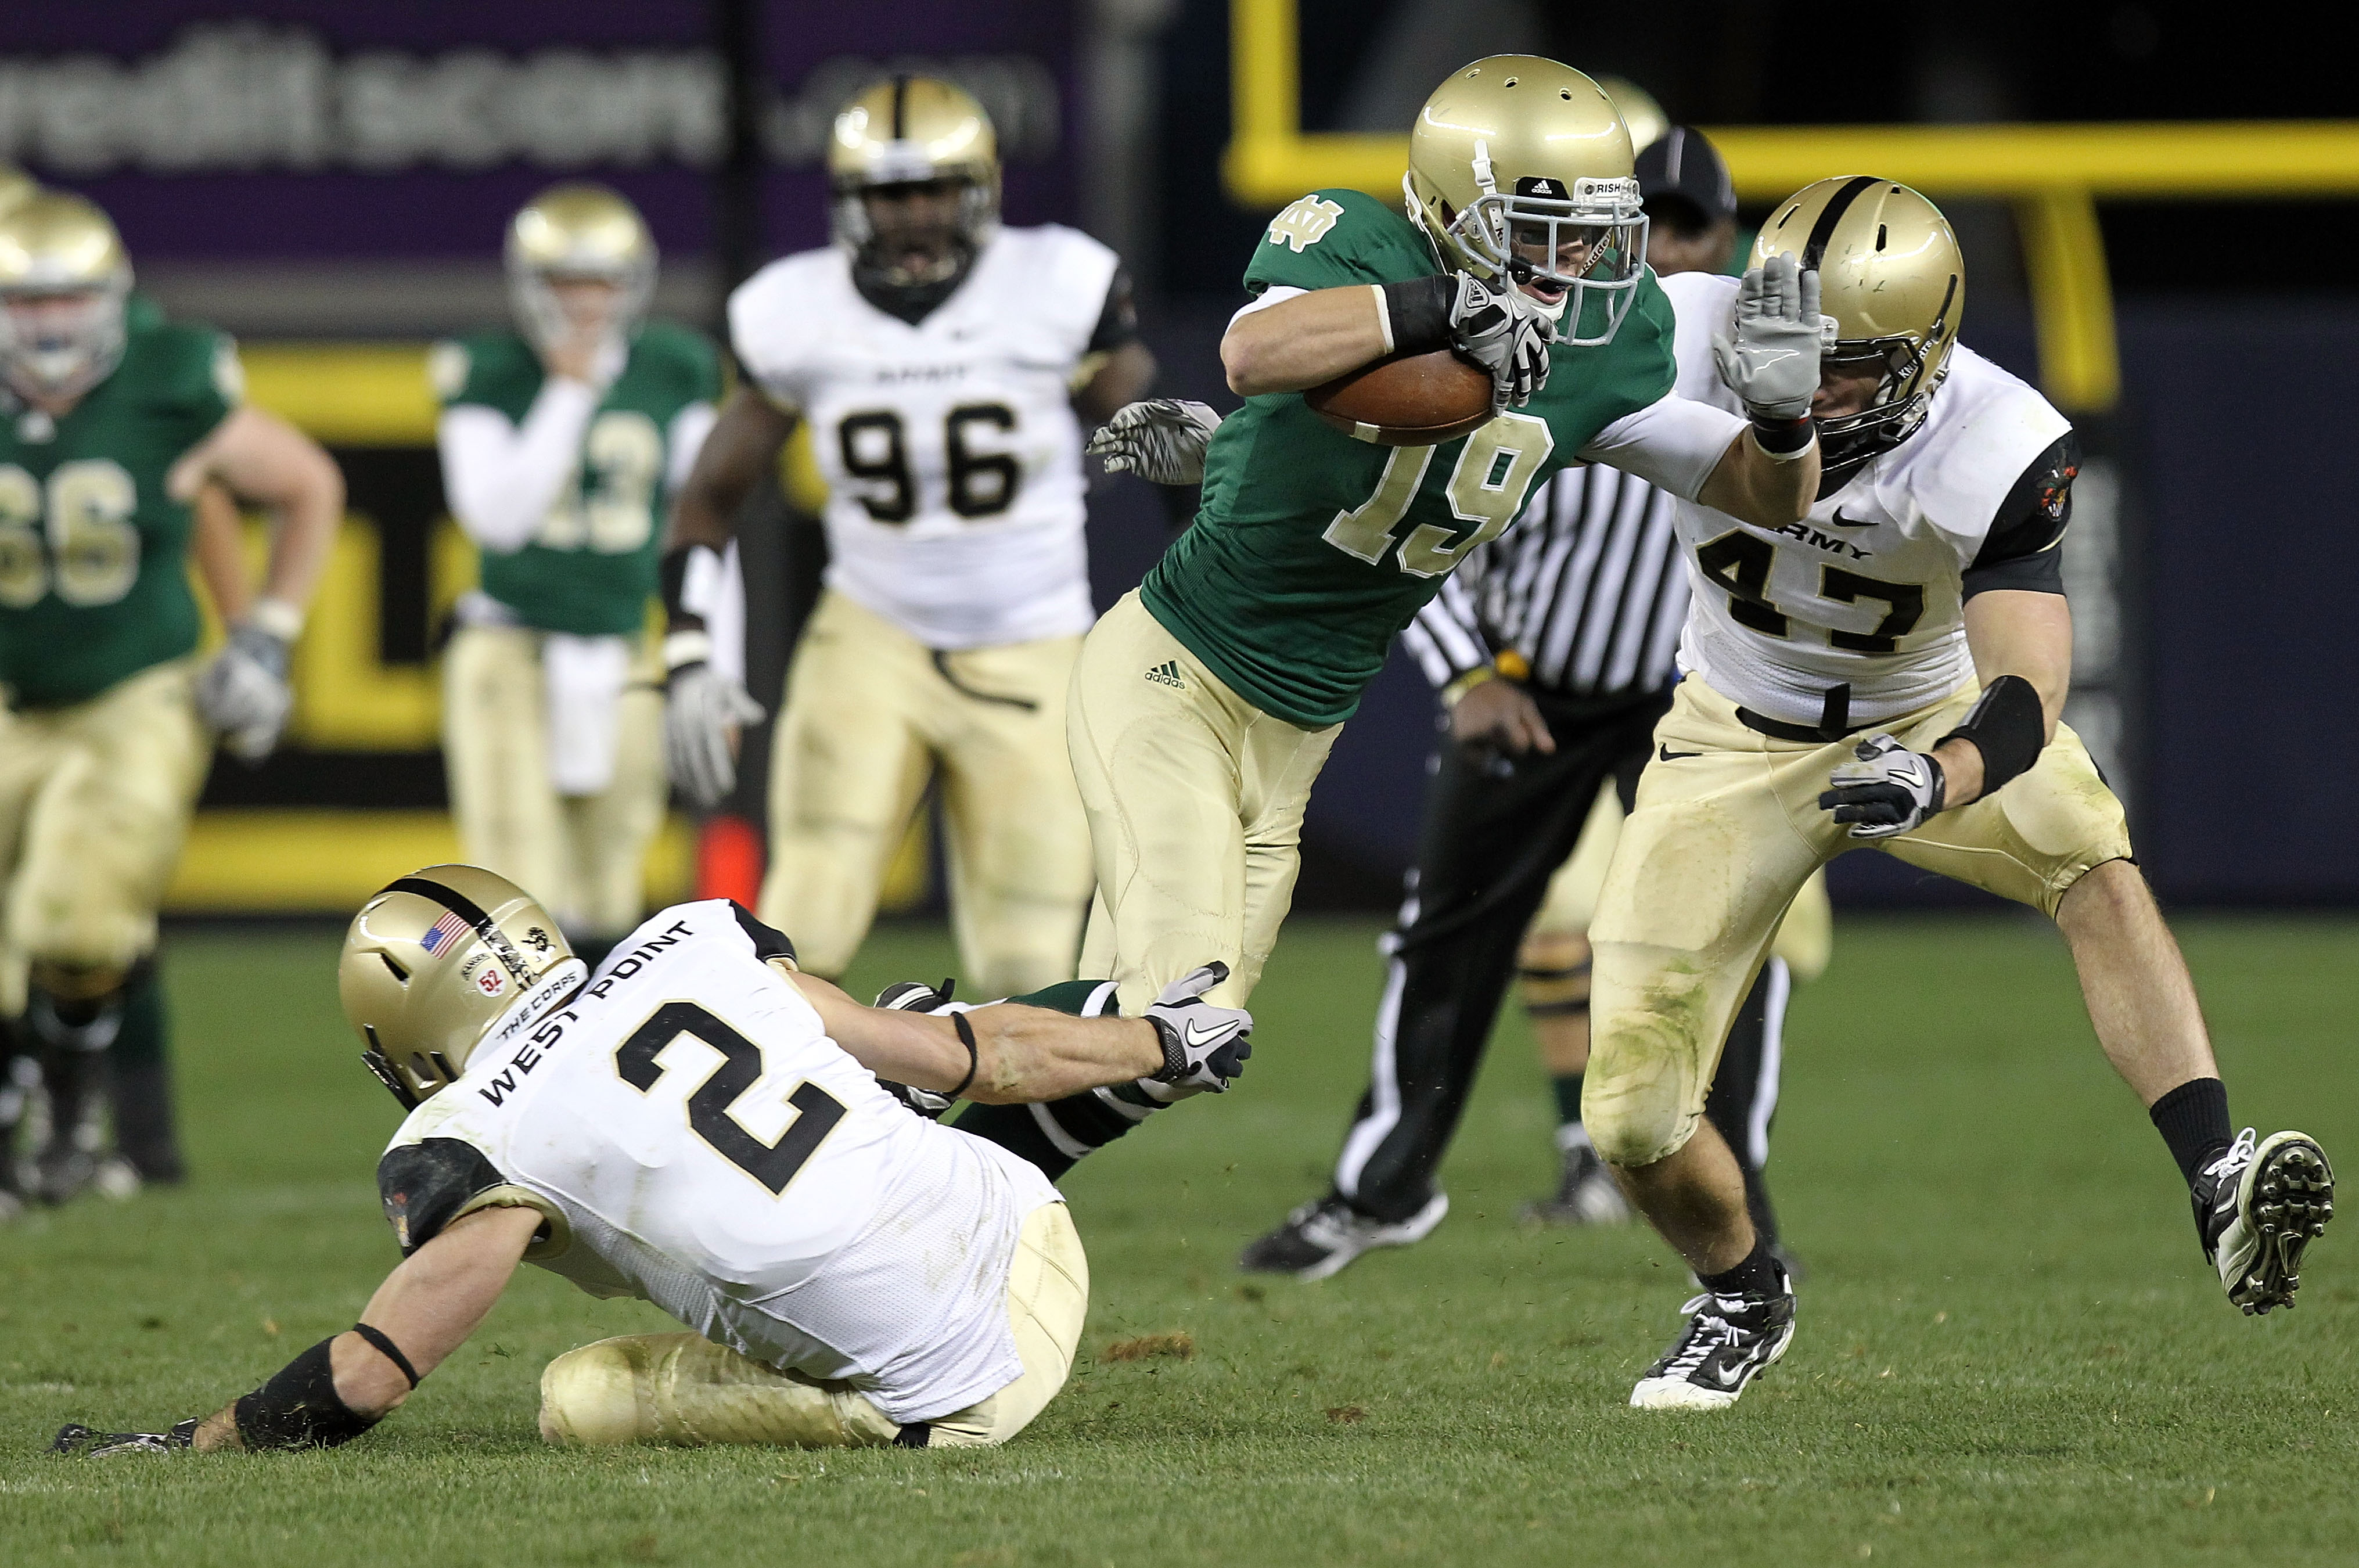 NEW YORK - NOVEMBER 20: Robby Toma #19 of the Notre Dame Fighting Irish is tackled by Richard King #2 and Bill Prosko #47 of the Army Black Knights at Yankee Stadium on November 20, 2010 in the Bronx borough of New York City.  (Photo by Nick Laham/Getty I